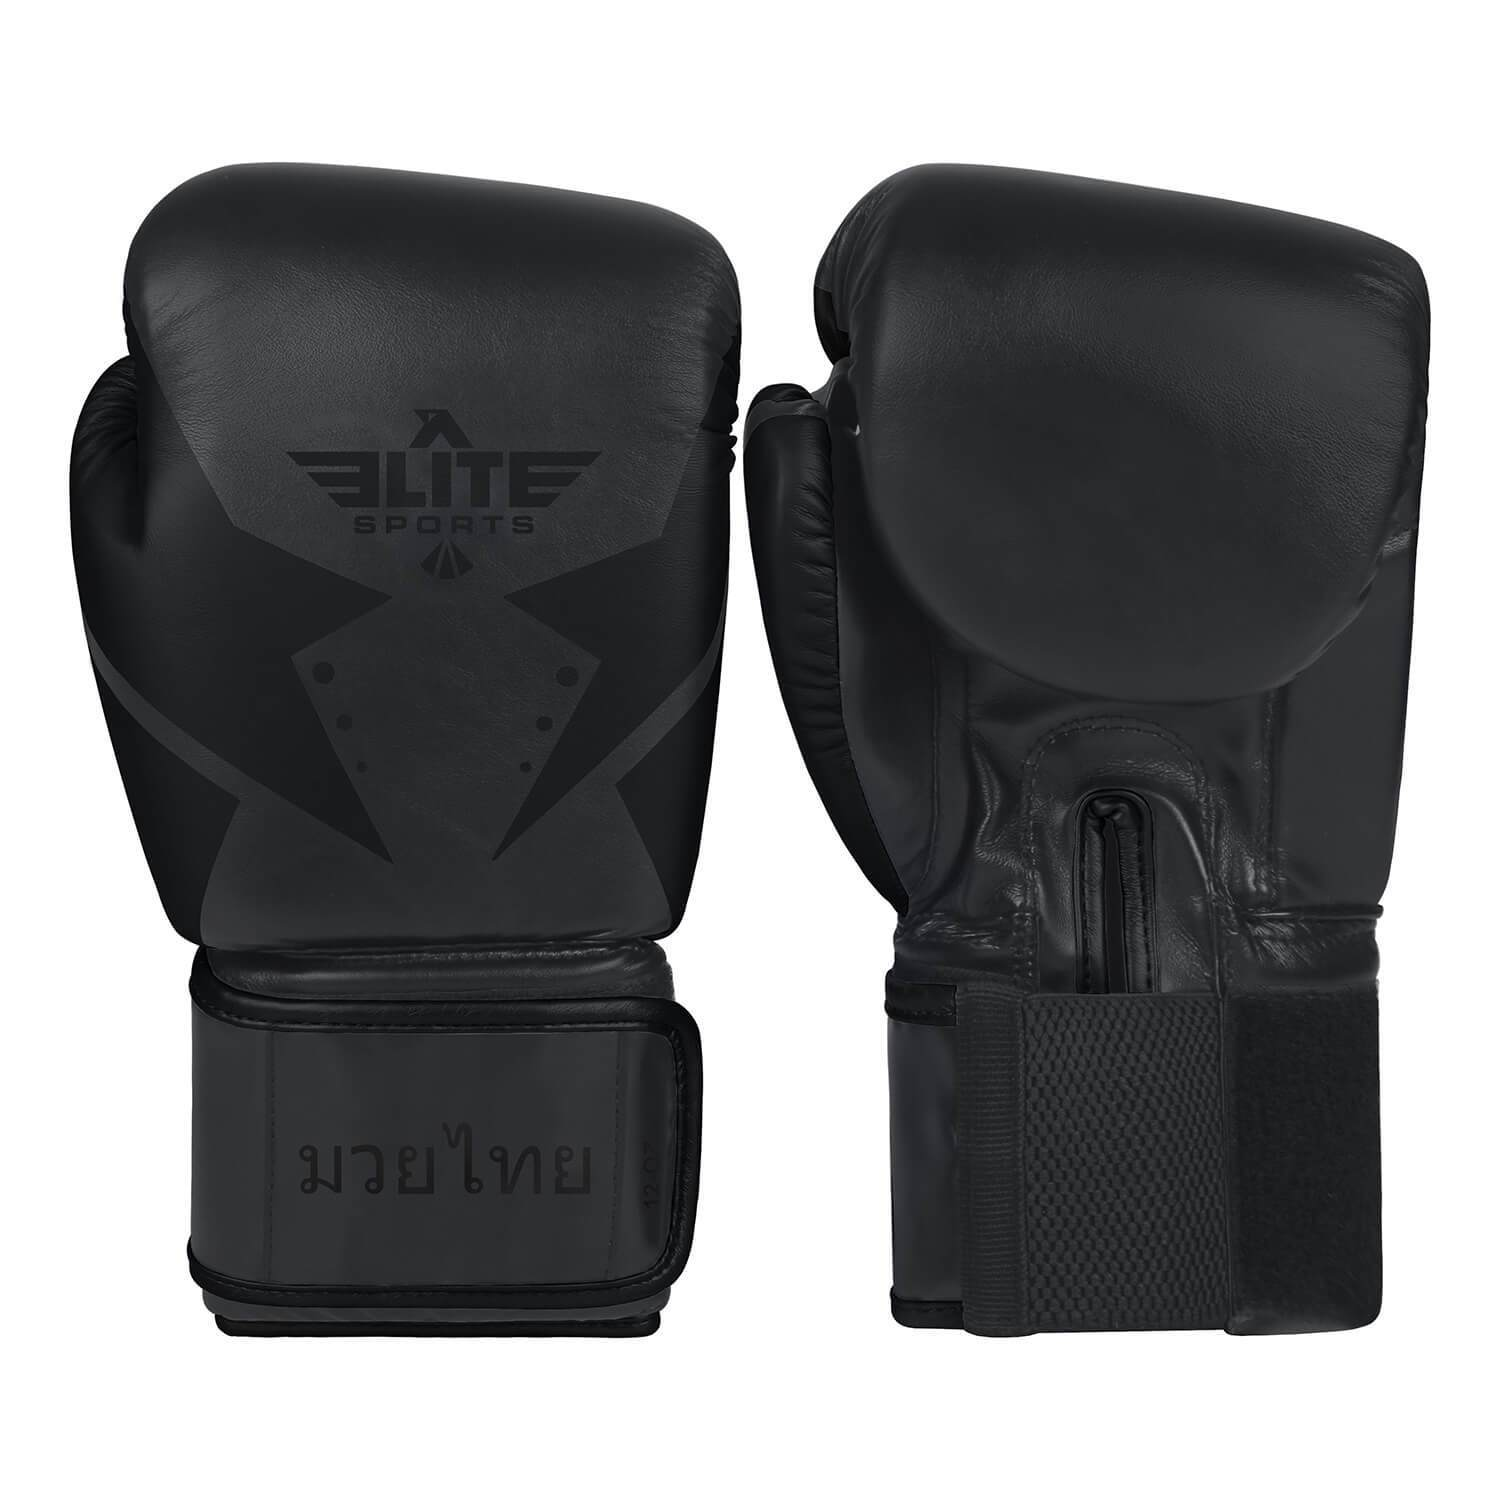 Load image into Gallery viewer, Elite Sports Star Series Black/Black Muay Thai Gloves